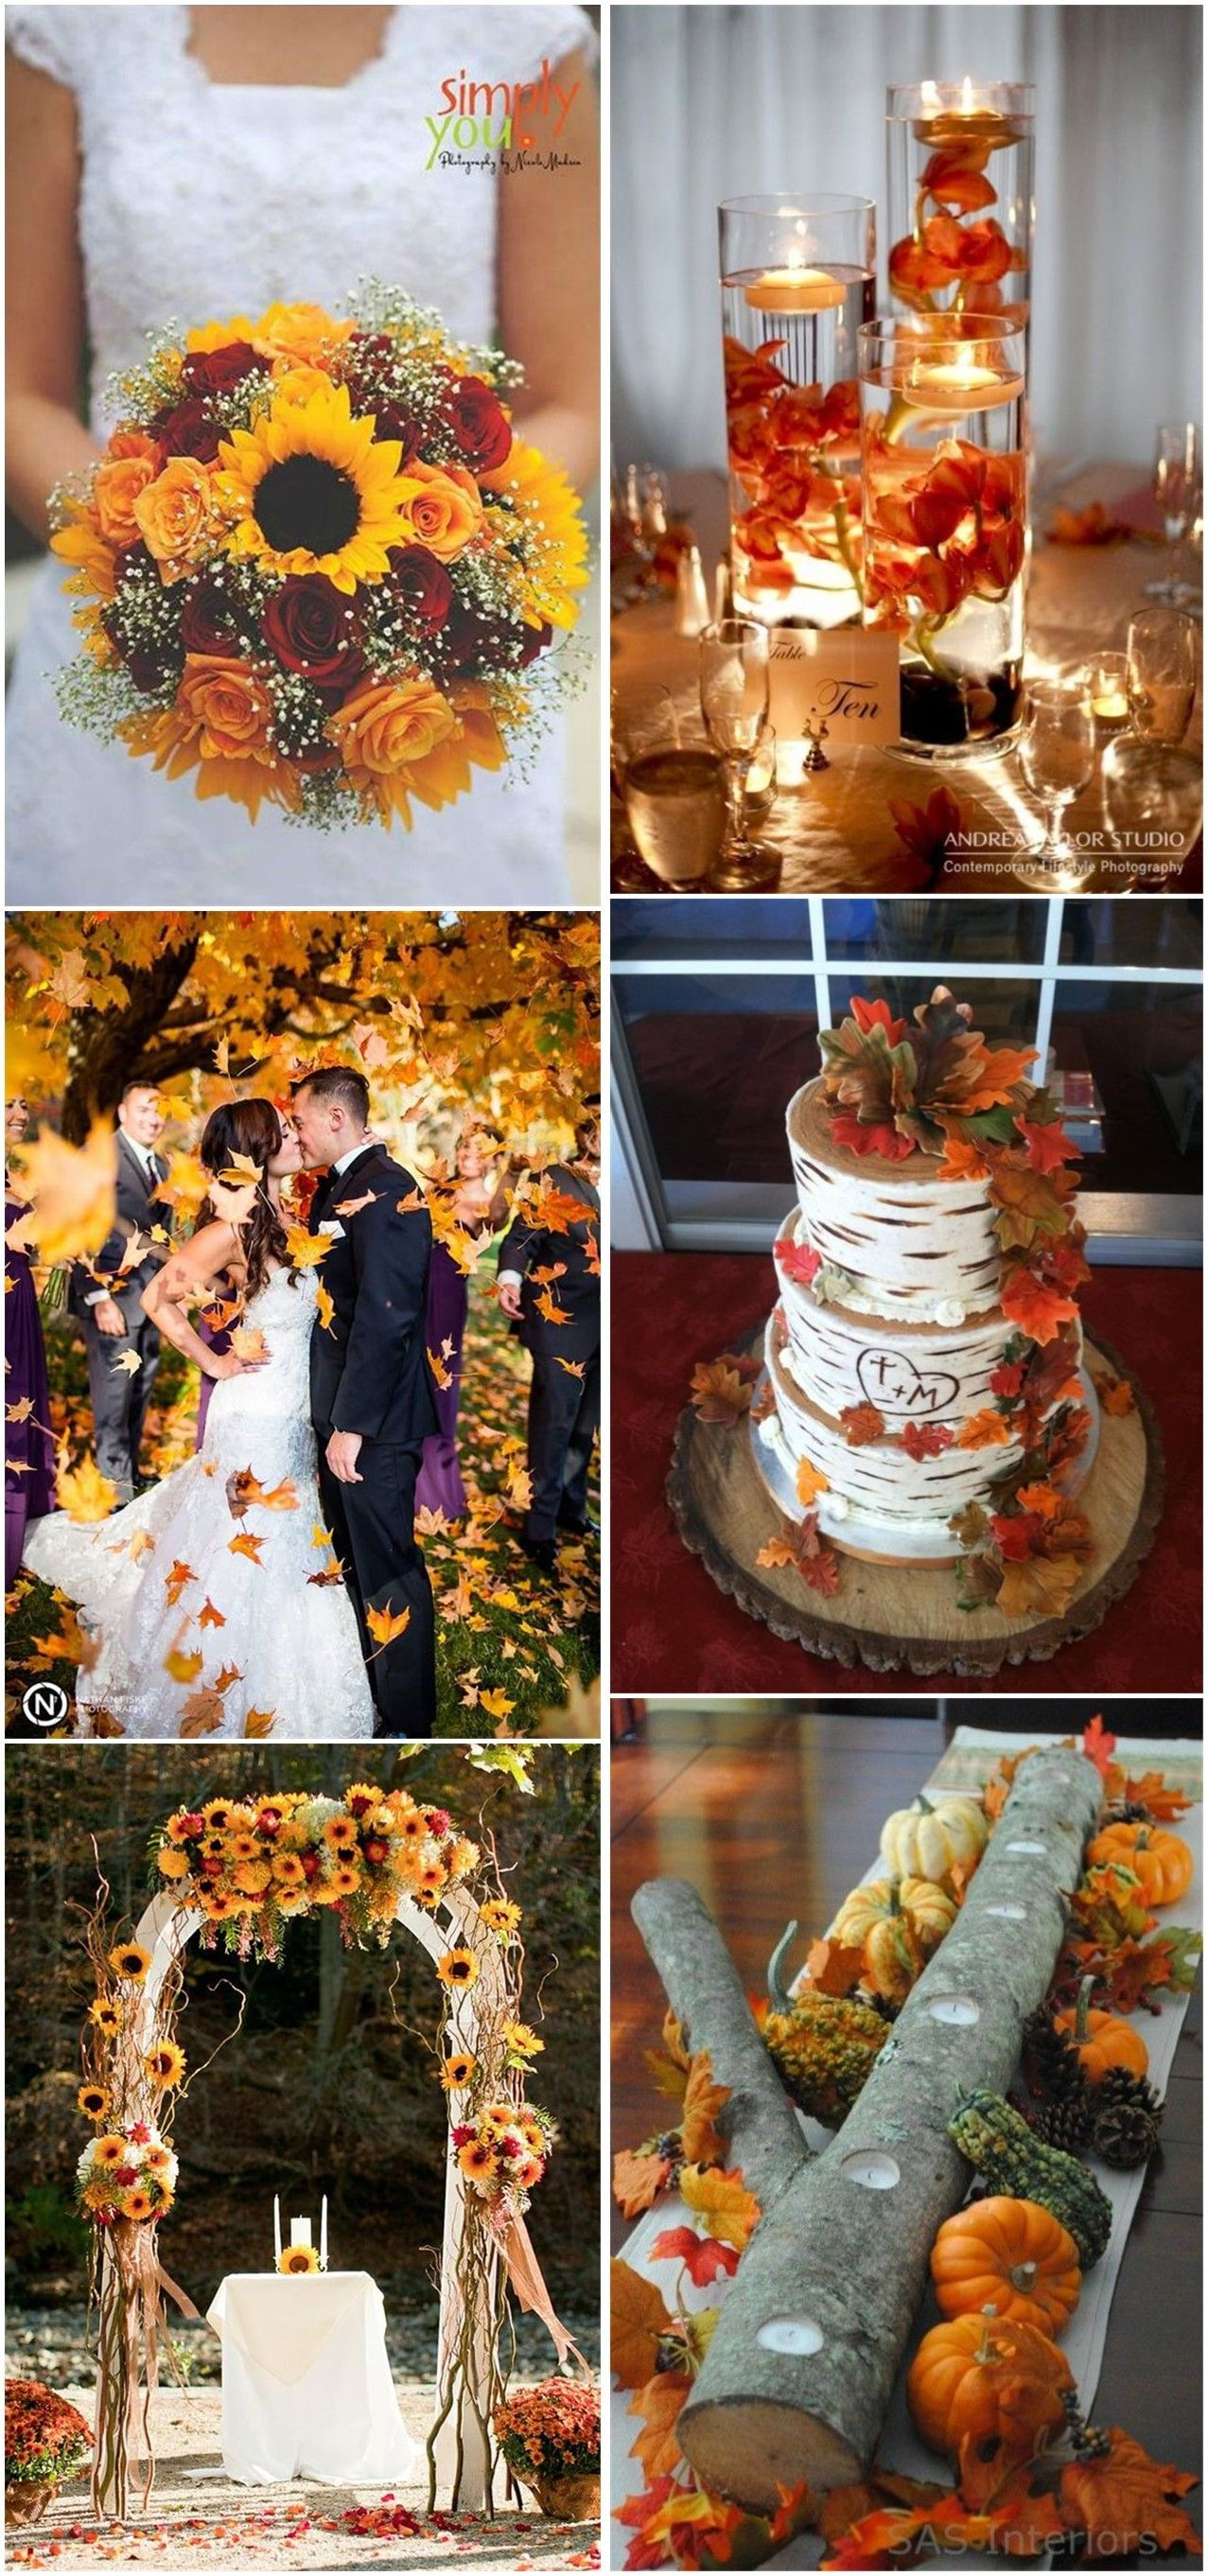 23 best fall wedding ideas in 2018 pinterest weddings wedding fall weddings 23 best fall wedding ideas in 2017 see more httpweddinginclude201703best fall wedding ideas junglespirit